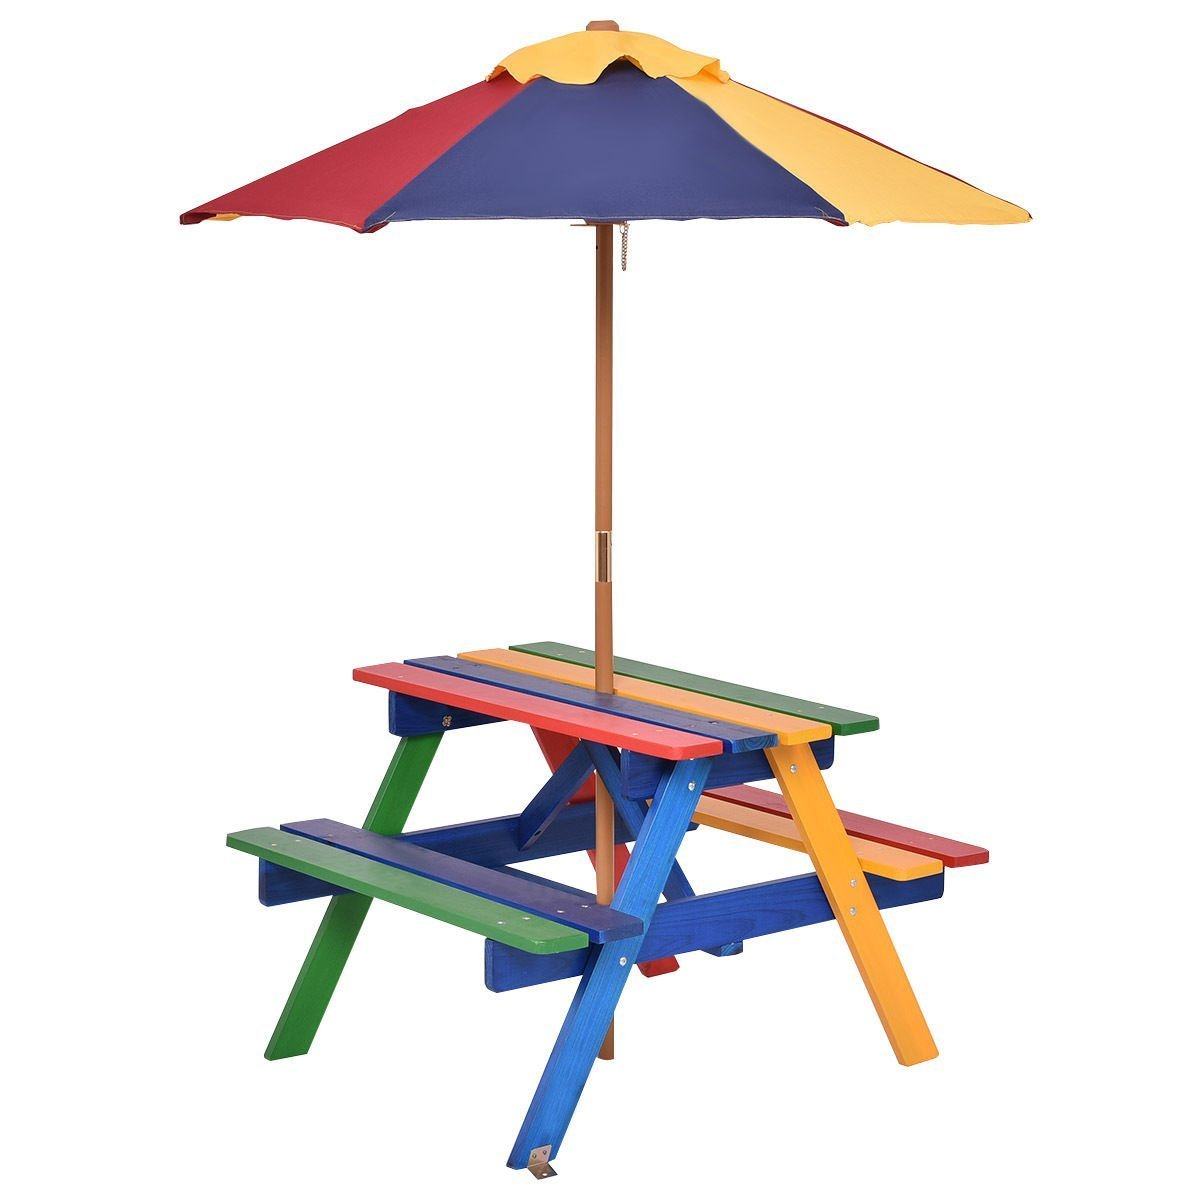 Costzon Kids Picnic Table Set, Colorful Wood Picnic Table and Benches with Removable/Folding Umbrella, Children Rainbow Bench Outdoor Patio Set by Costzon